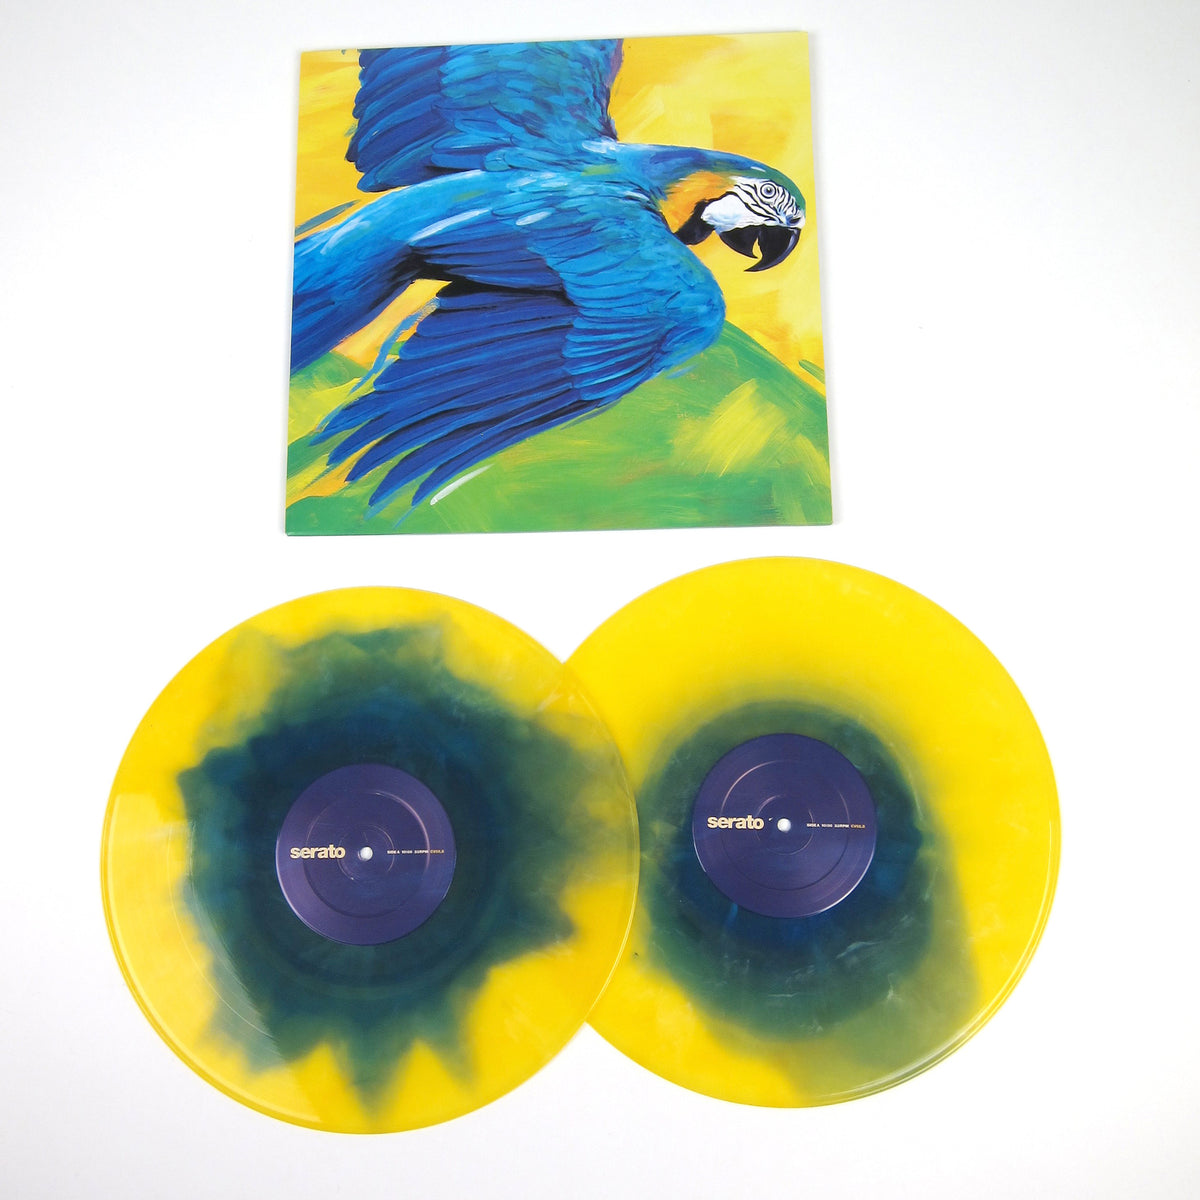 Serato: Performance Series Control Vinyl 2LP - Brazil Edition